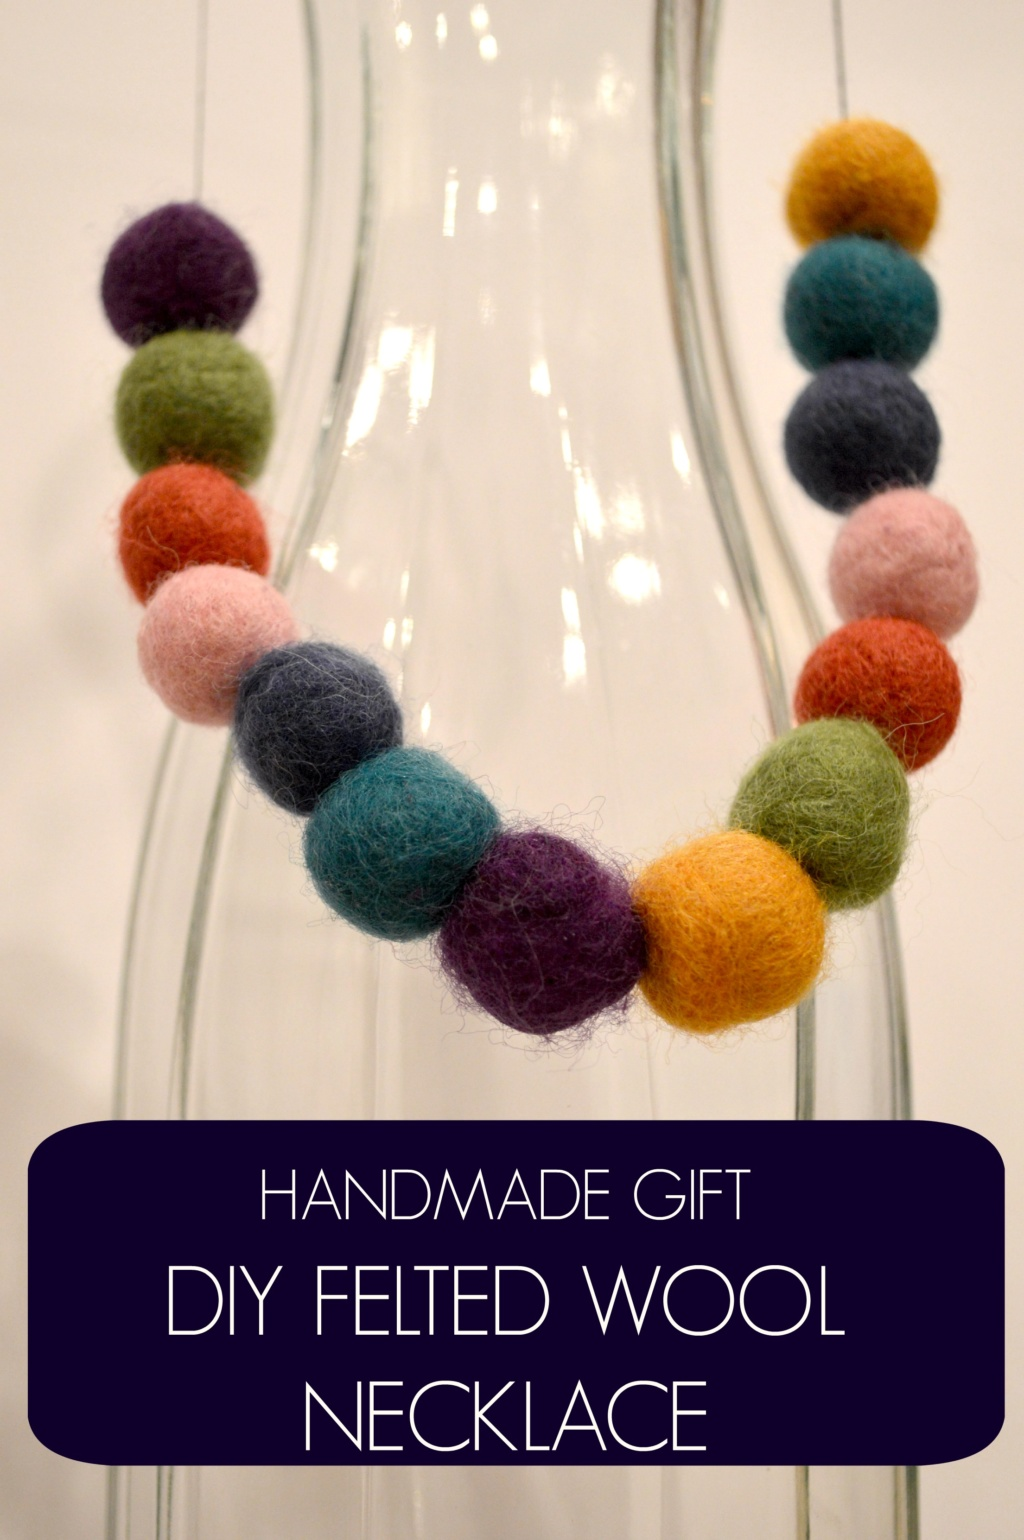 Handmade Gift – DIY Felted Wool Necklace